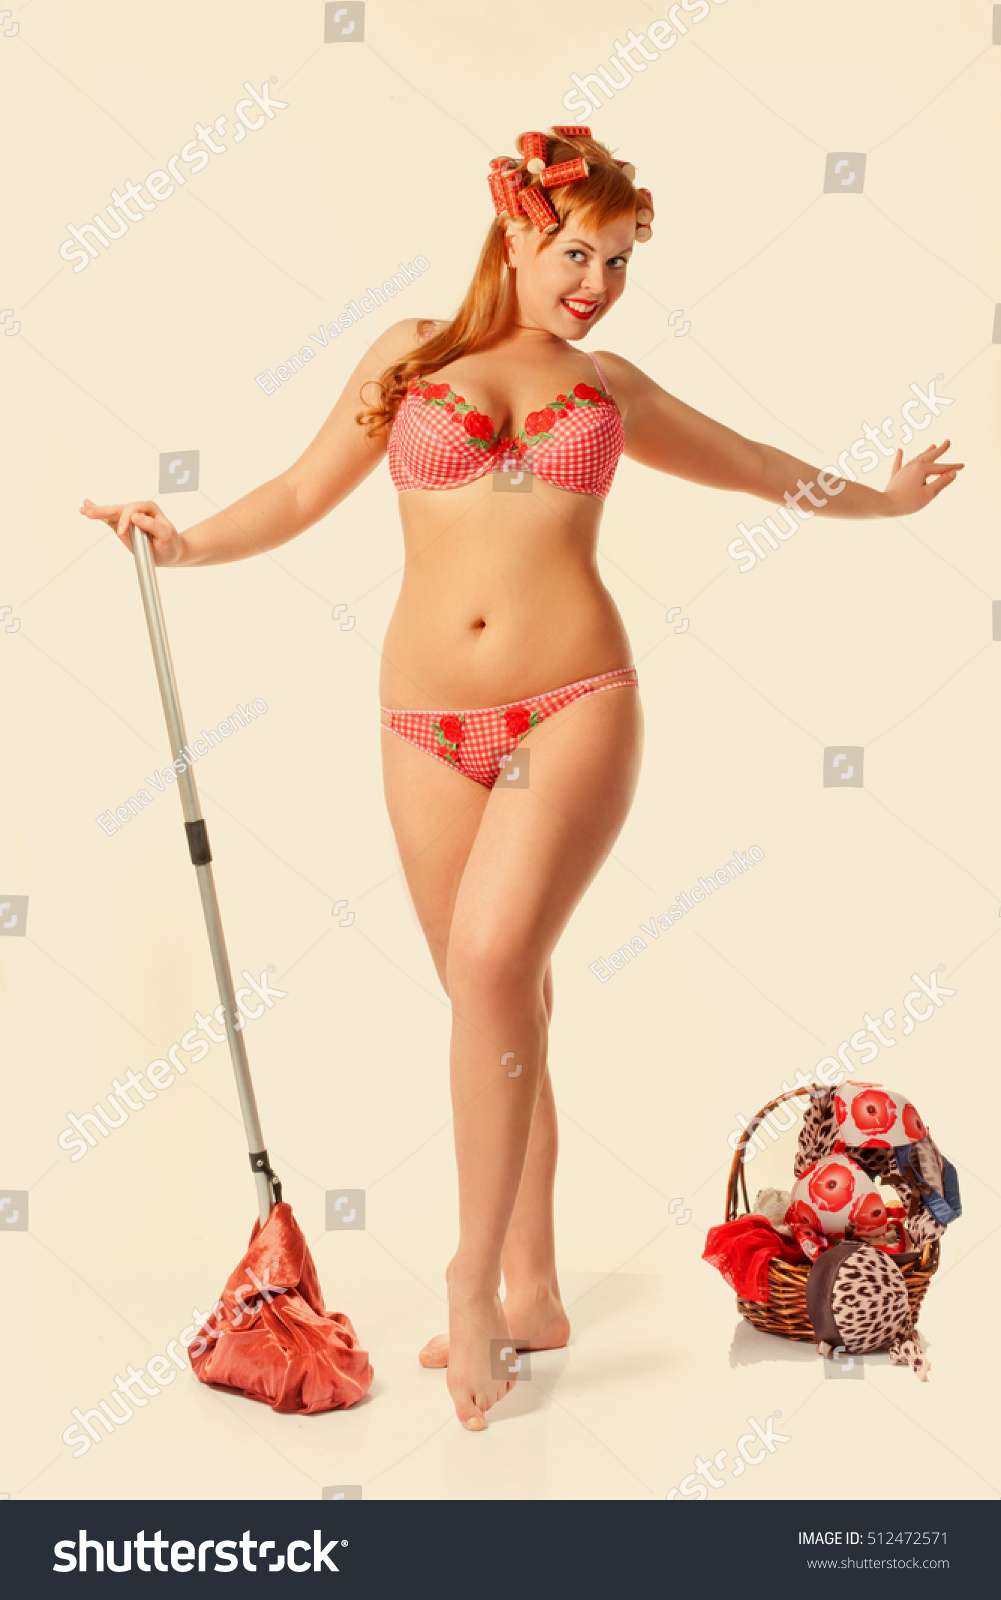 Attractive pin-up girl wearing underwear posing with swab. Toning photo for  vintage effect